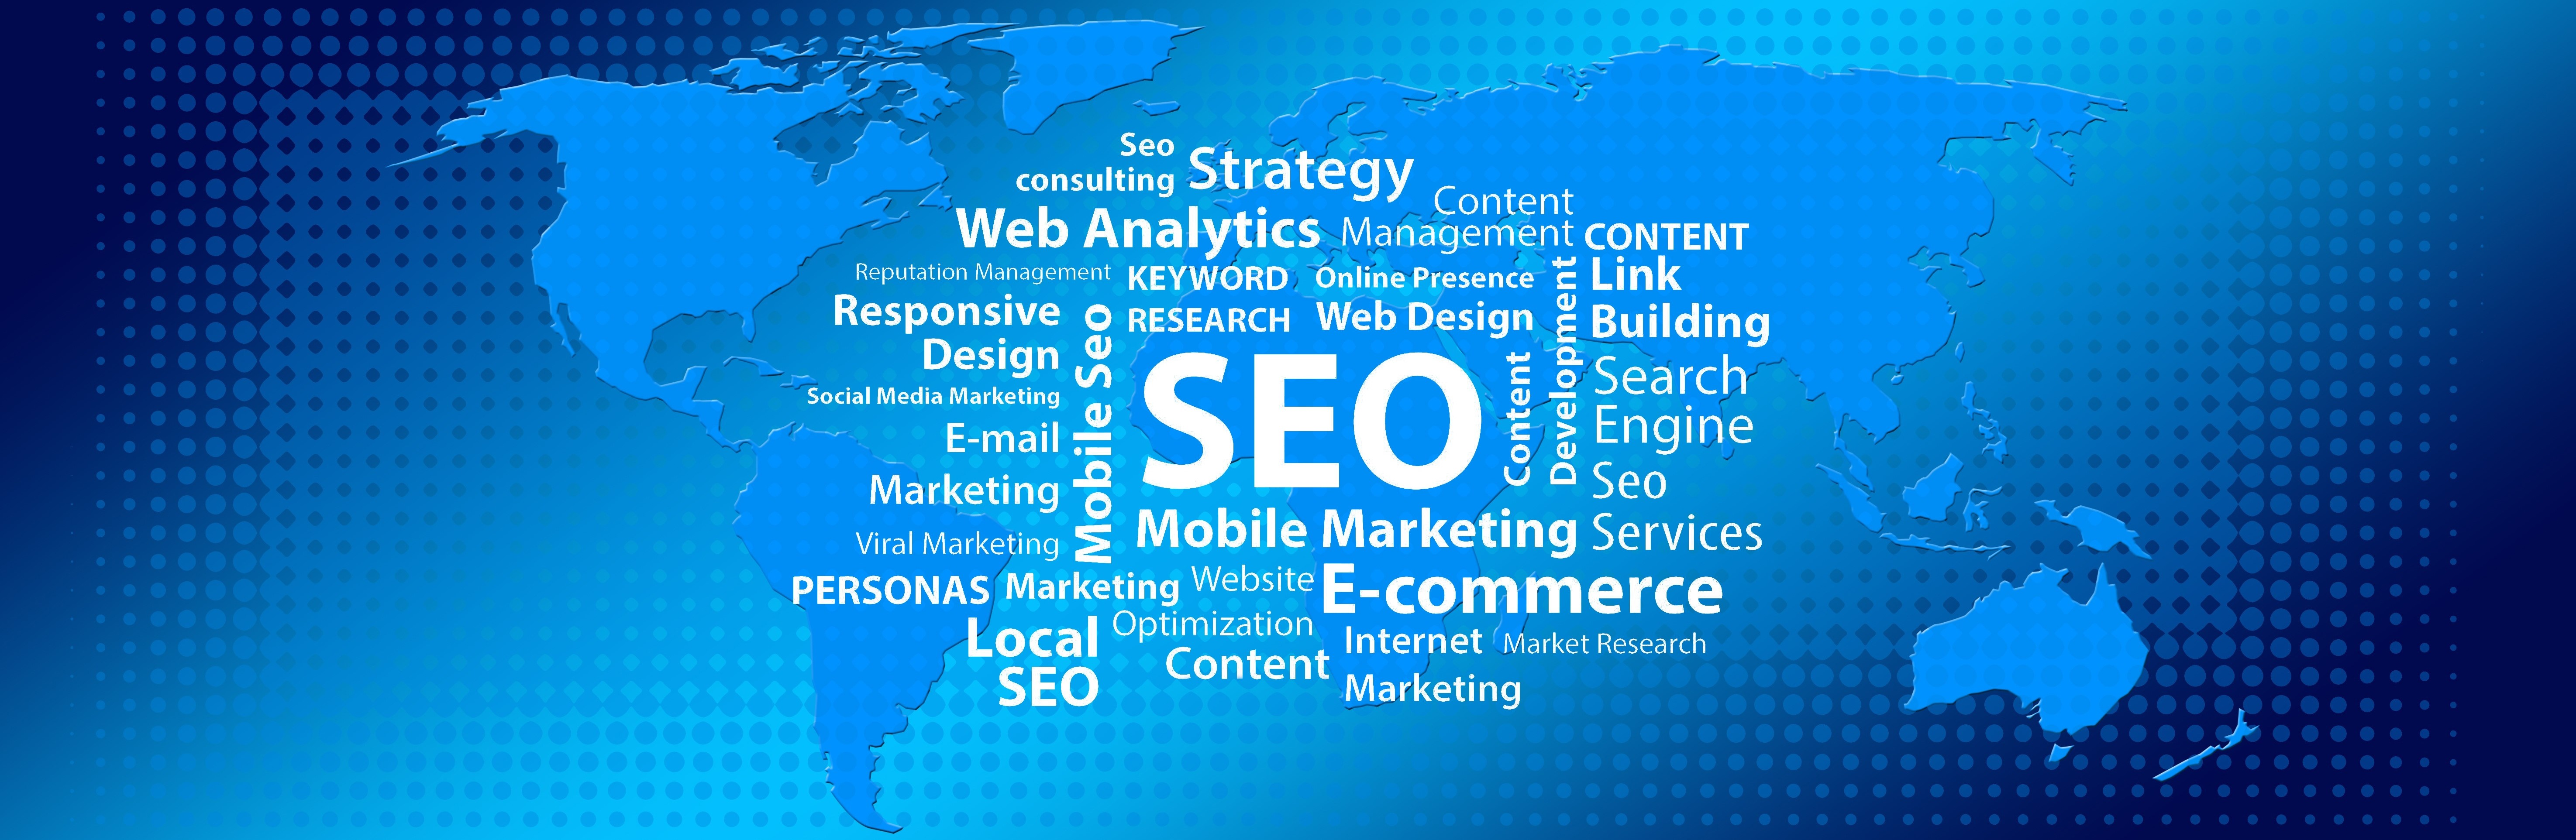 Search Engine Optimization with Keywords